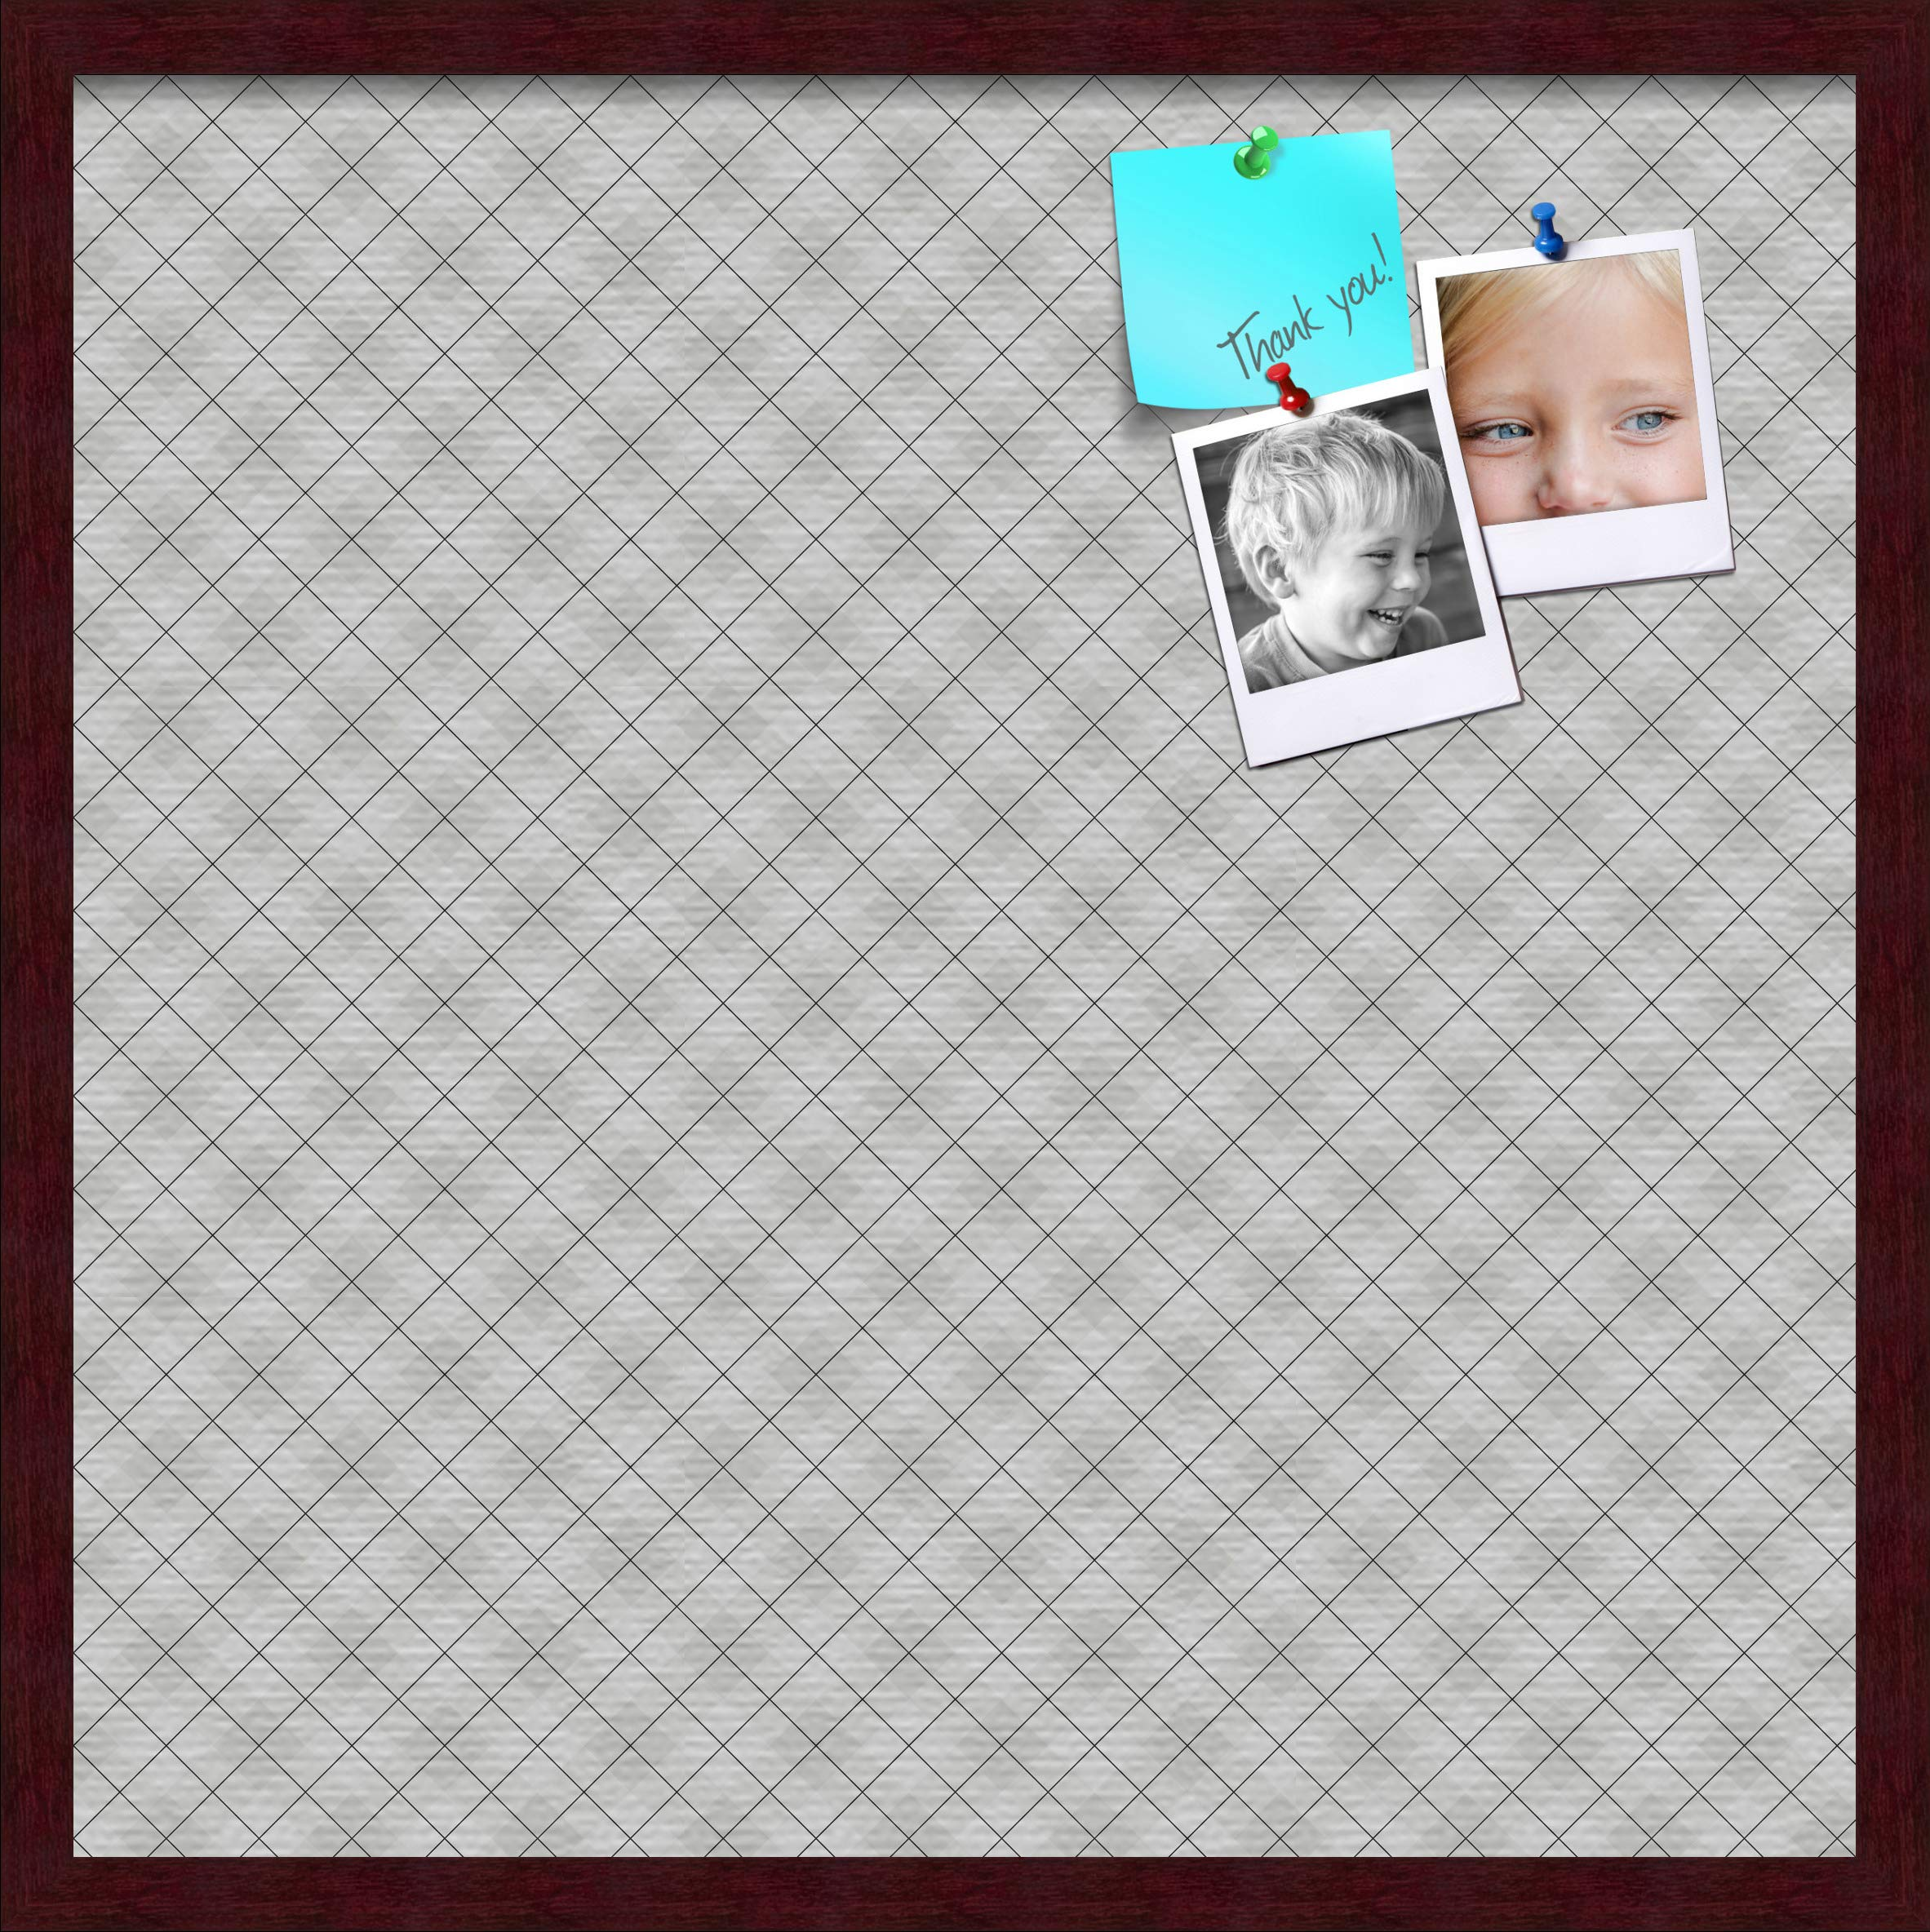 ArtToFrames 24x24 Inch Custom Cork Bulletin Board. This Argyle Gray Pin Board Comes Has a Fabric Style Canvas Finish, in a Mahogany Frame (PinPix-638-24x24_FRBW26039) by PinPix